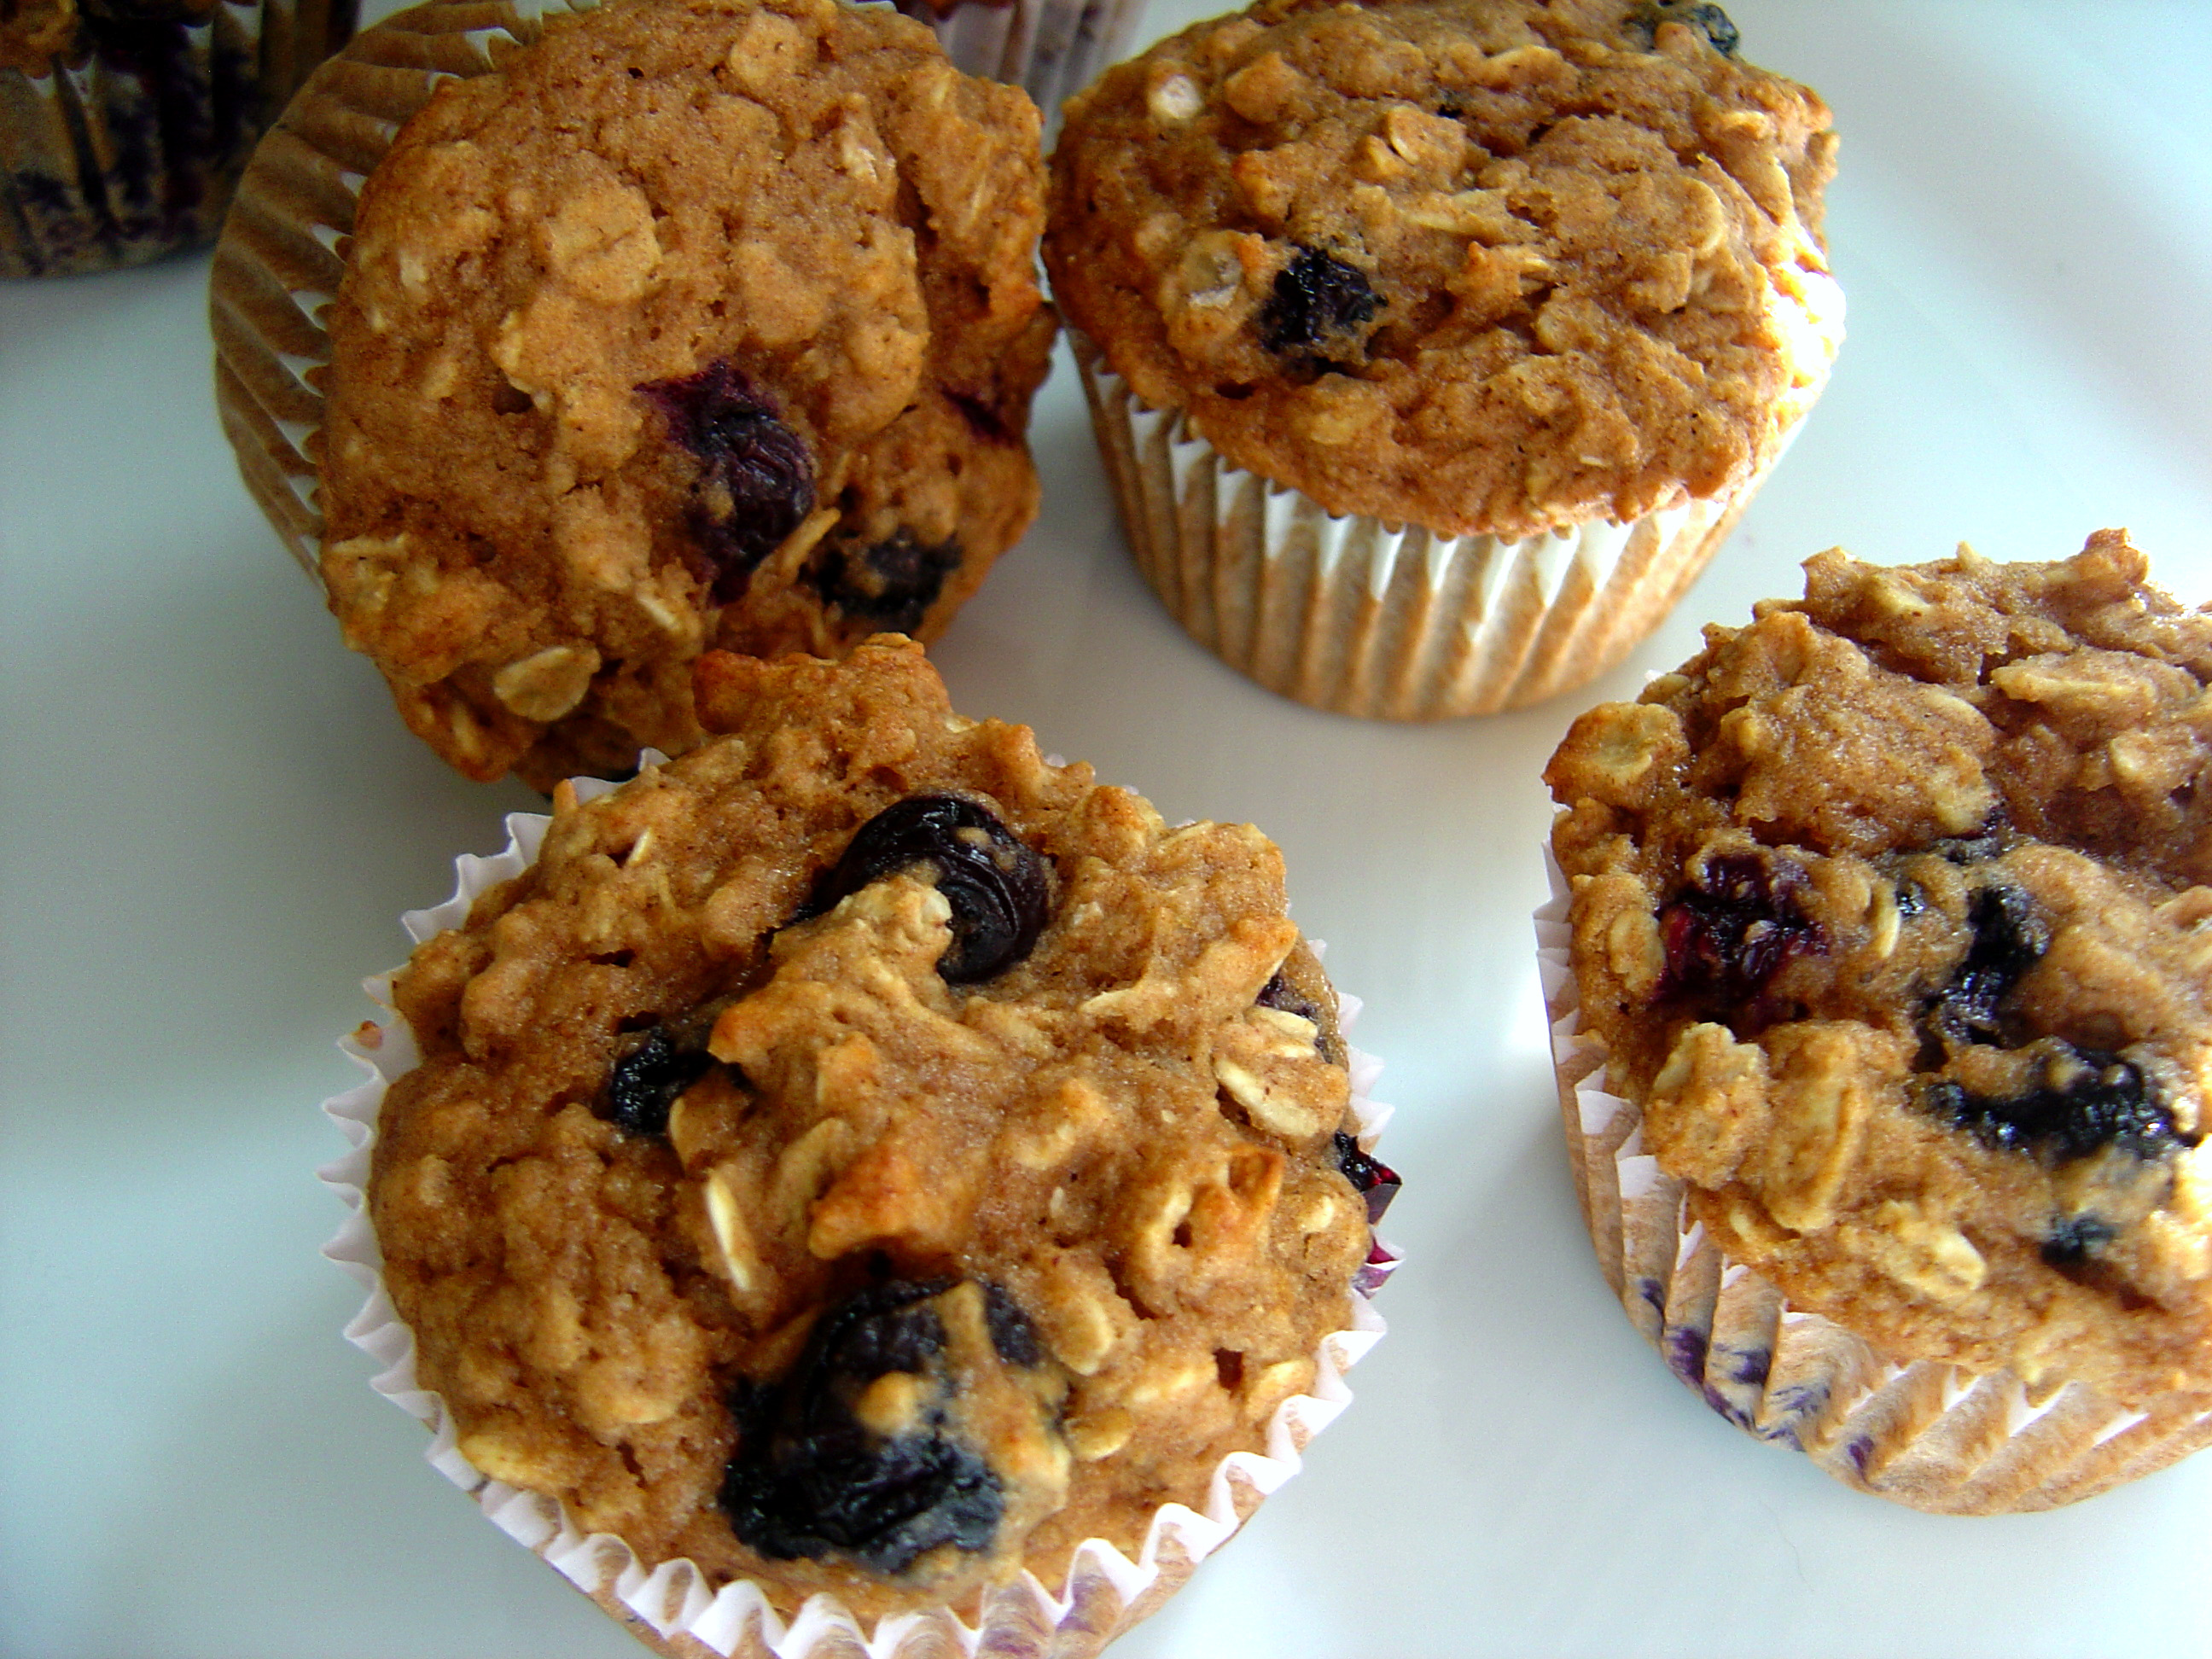 Oatmeal Blueberry Applesauce Muffins from Smells Like Home food blog